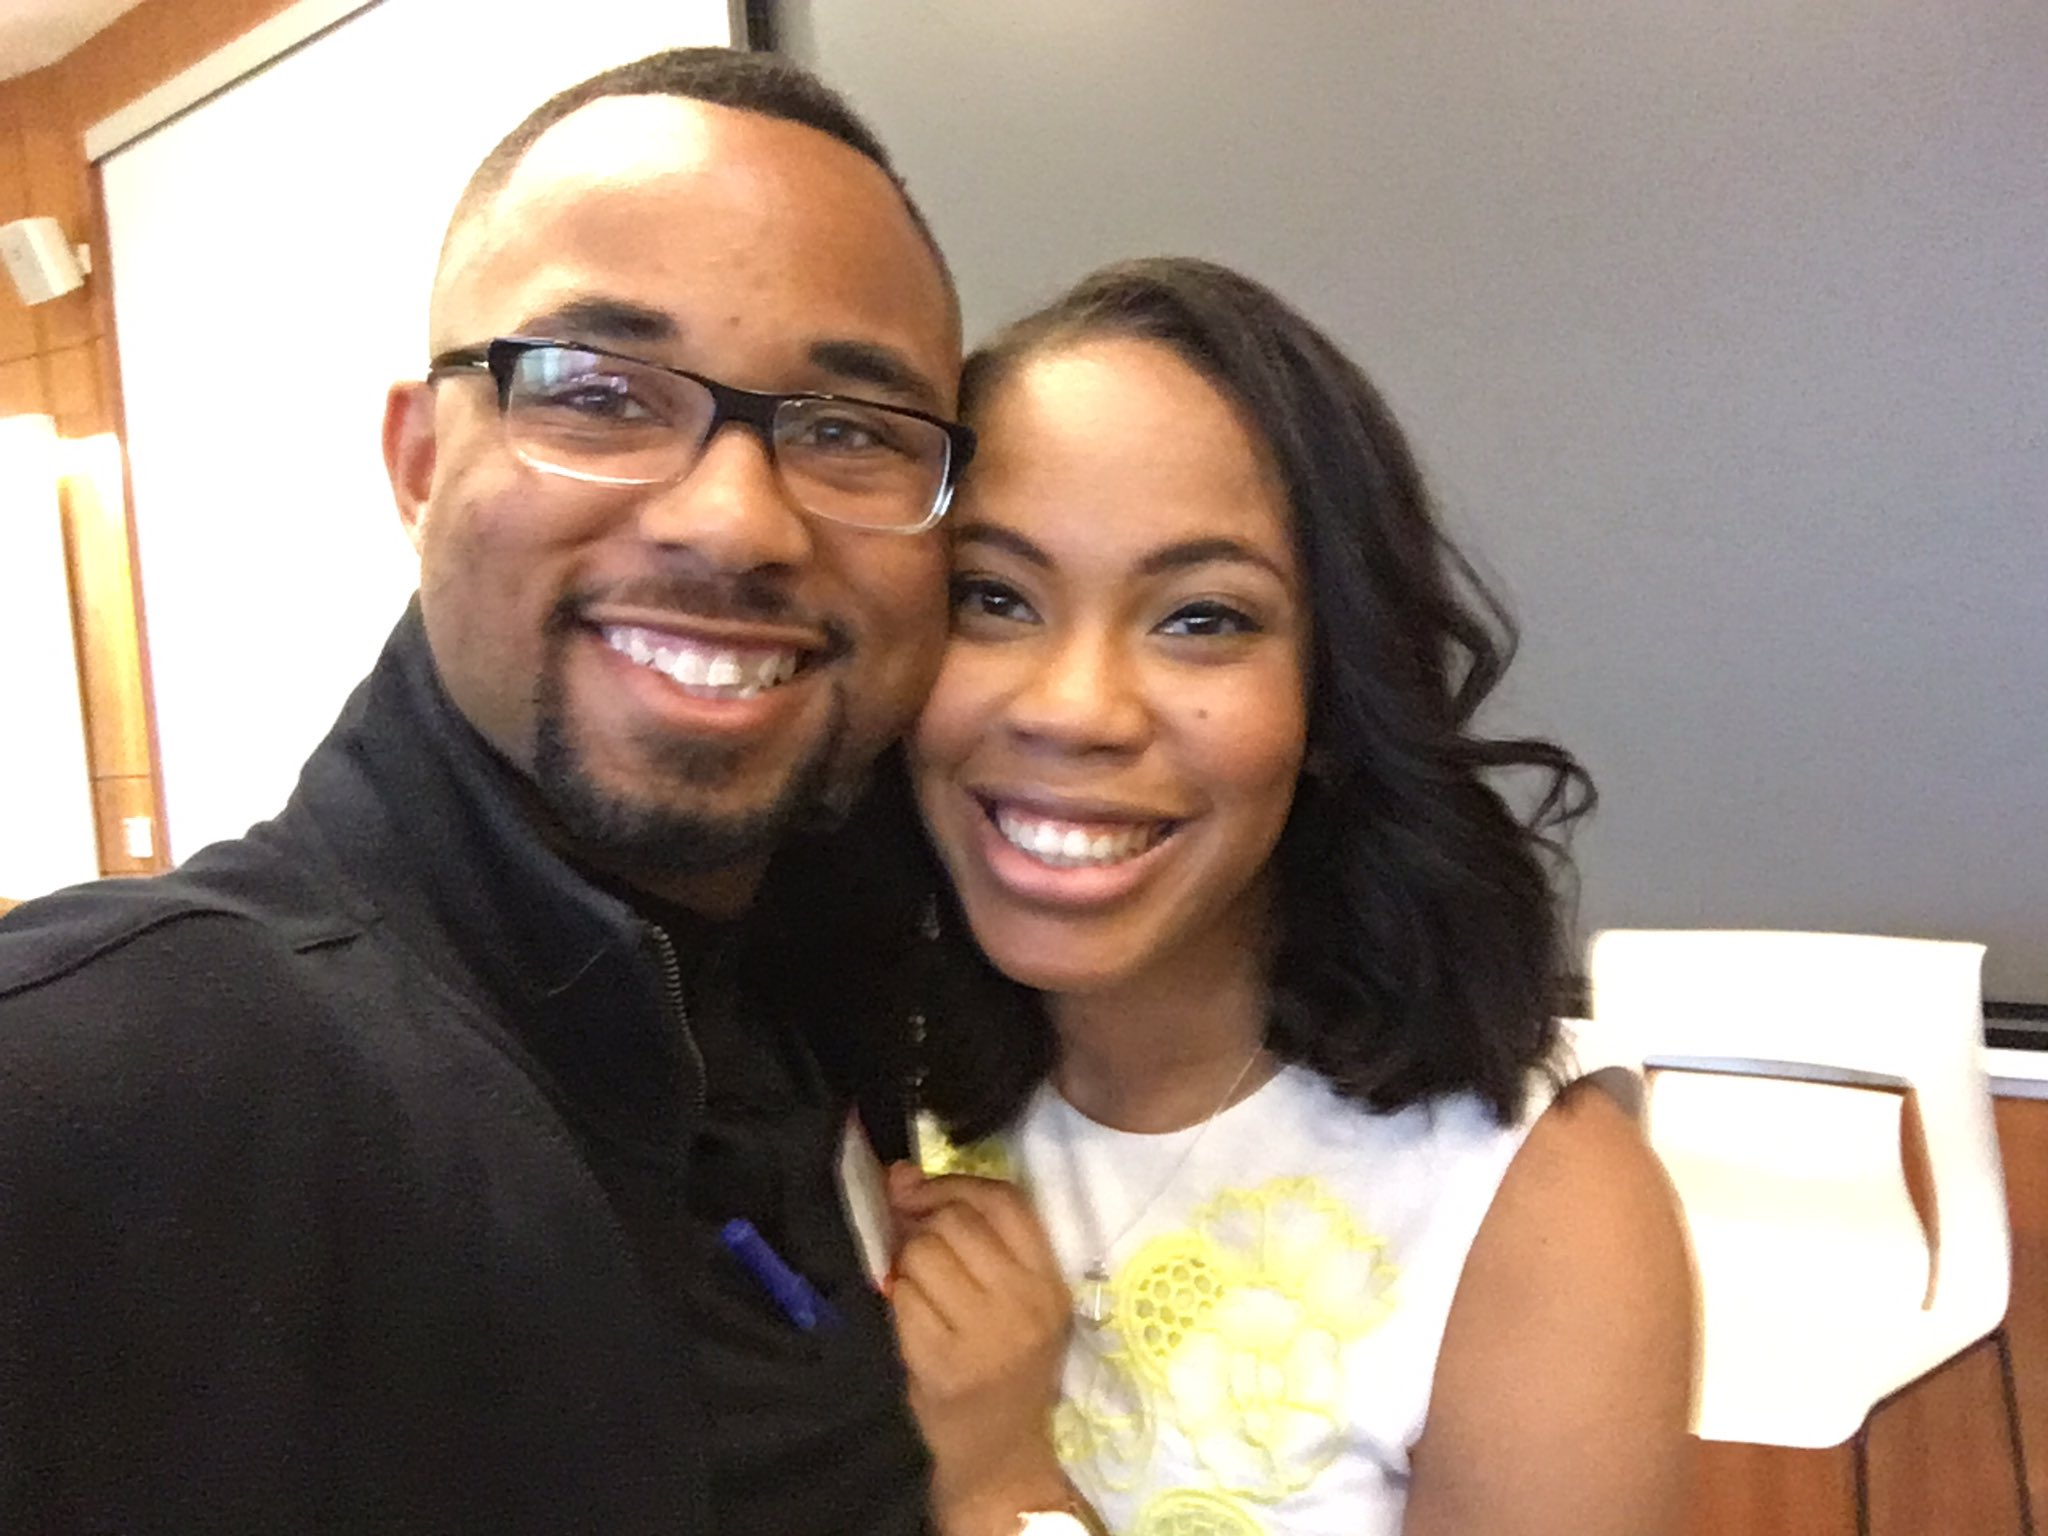 It was a pleasure meeting you @dbcadet ! Thanks for critiquing my blog! #PovichWorkshop17 https://t.co/R7fLJg3Hxe